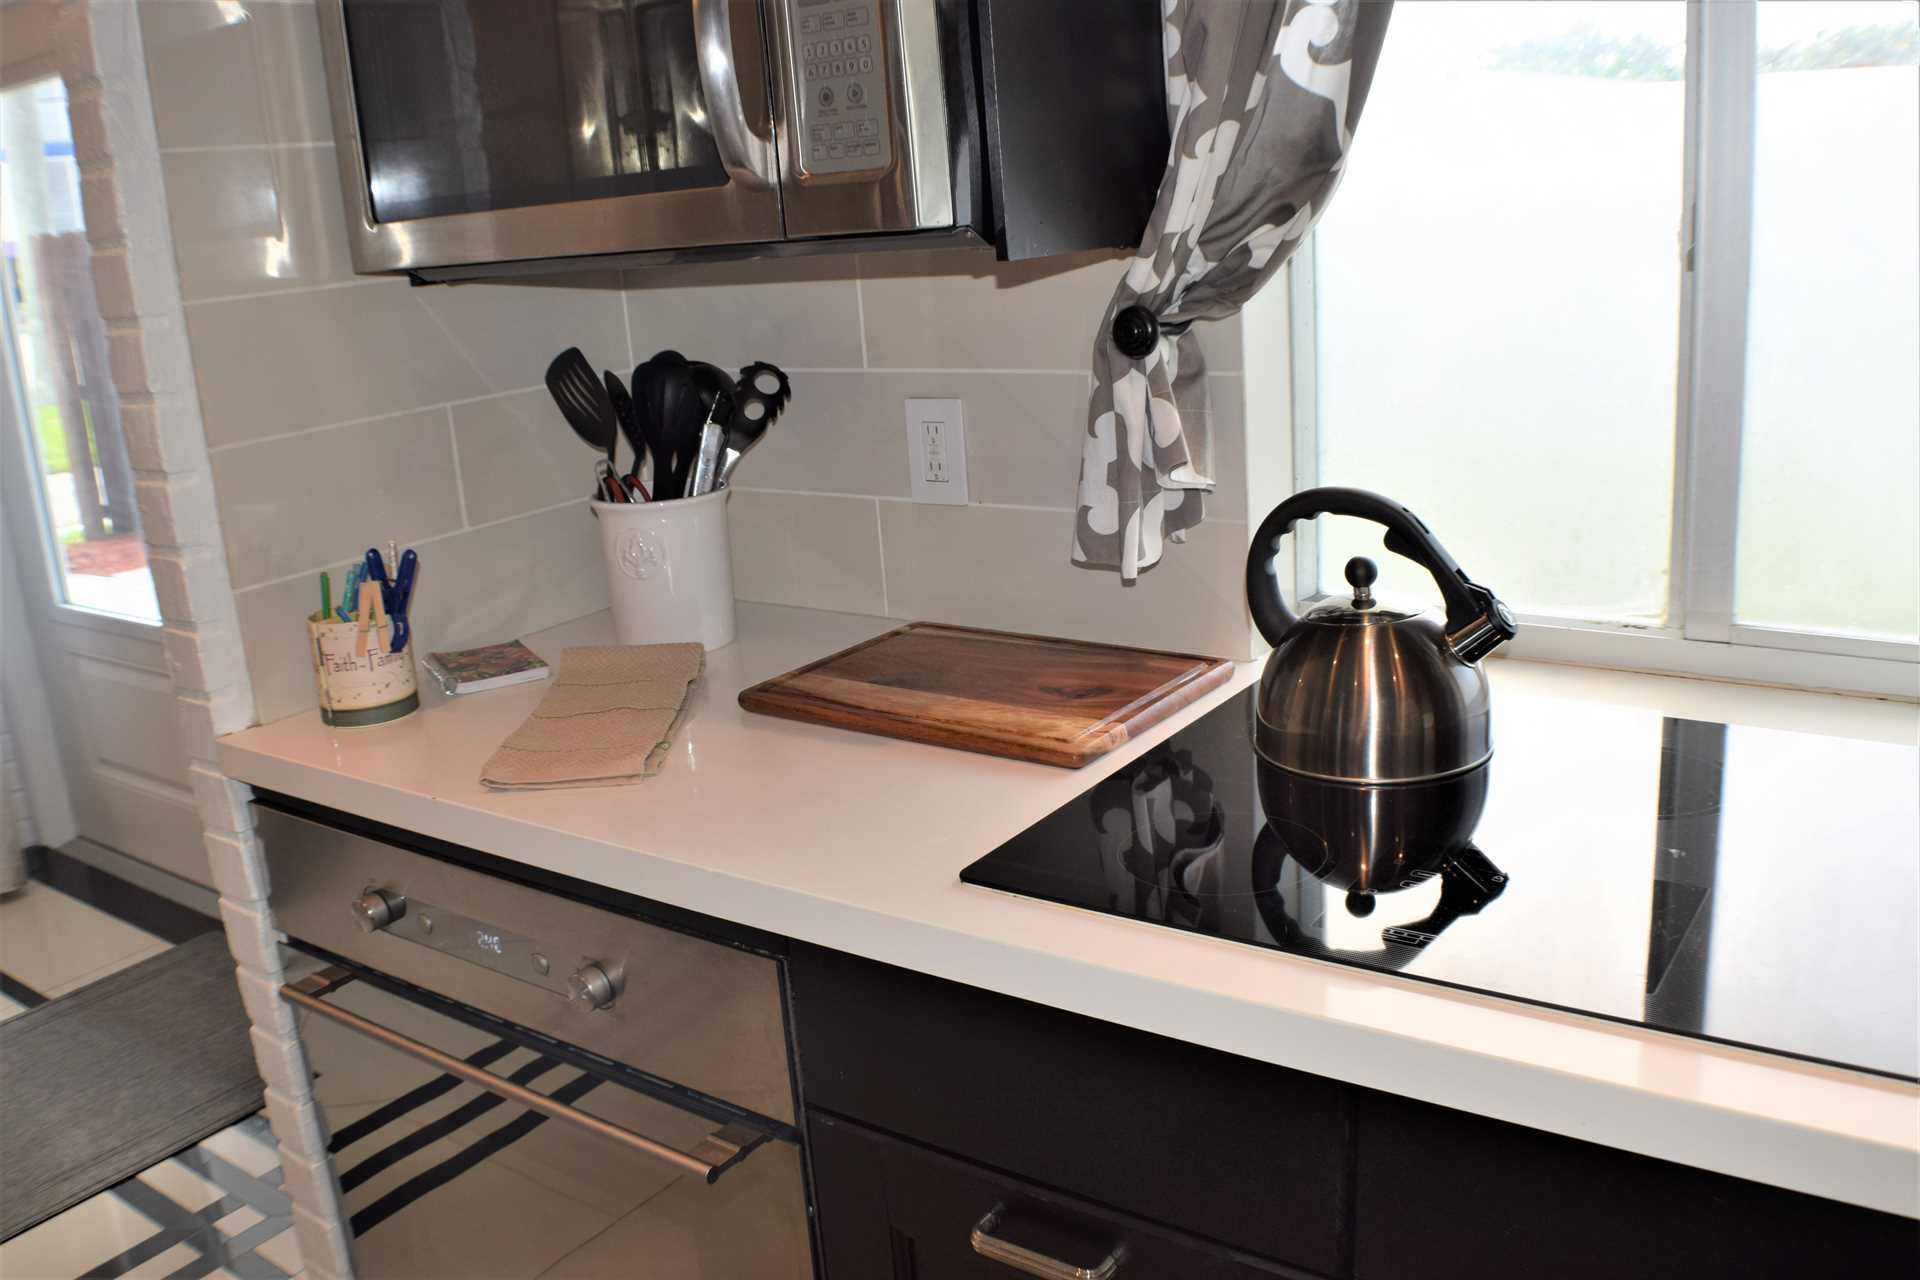 Plenty of counter space and above a microwave.